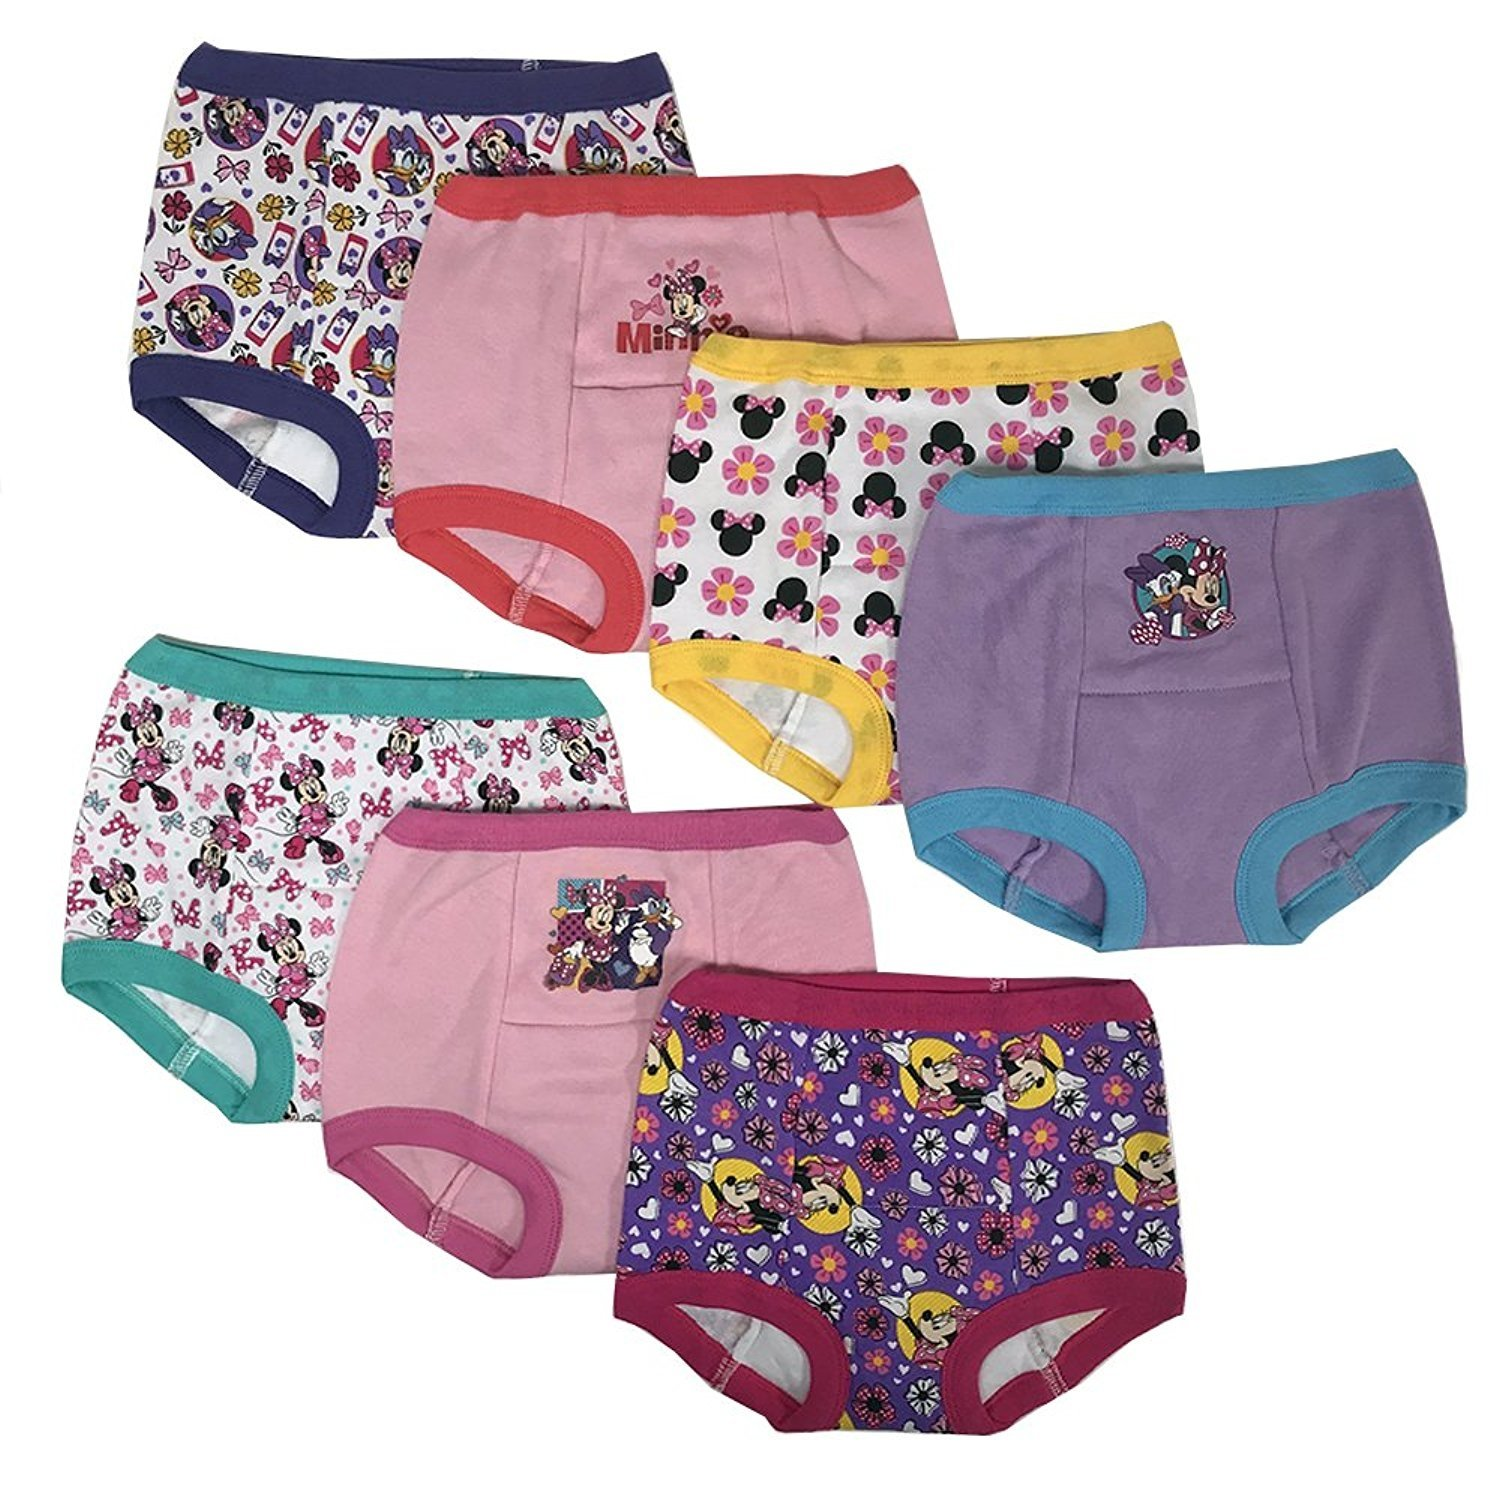 Handcraft Disney Minnie Mouse Girls Potty Training Pants Panties Underwear Toddler 7-Pack Size 2T 3T 4T